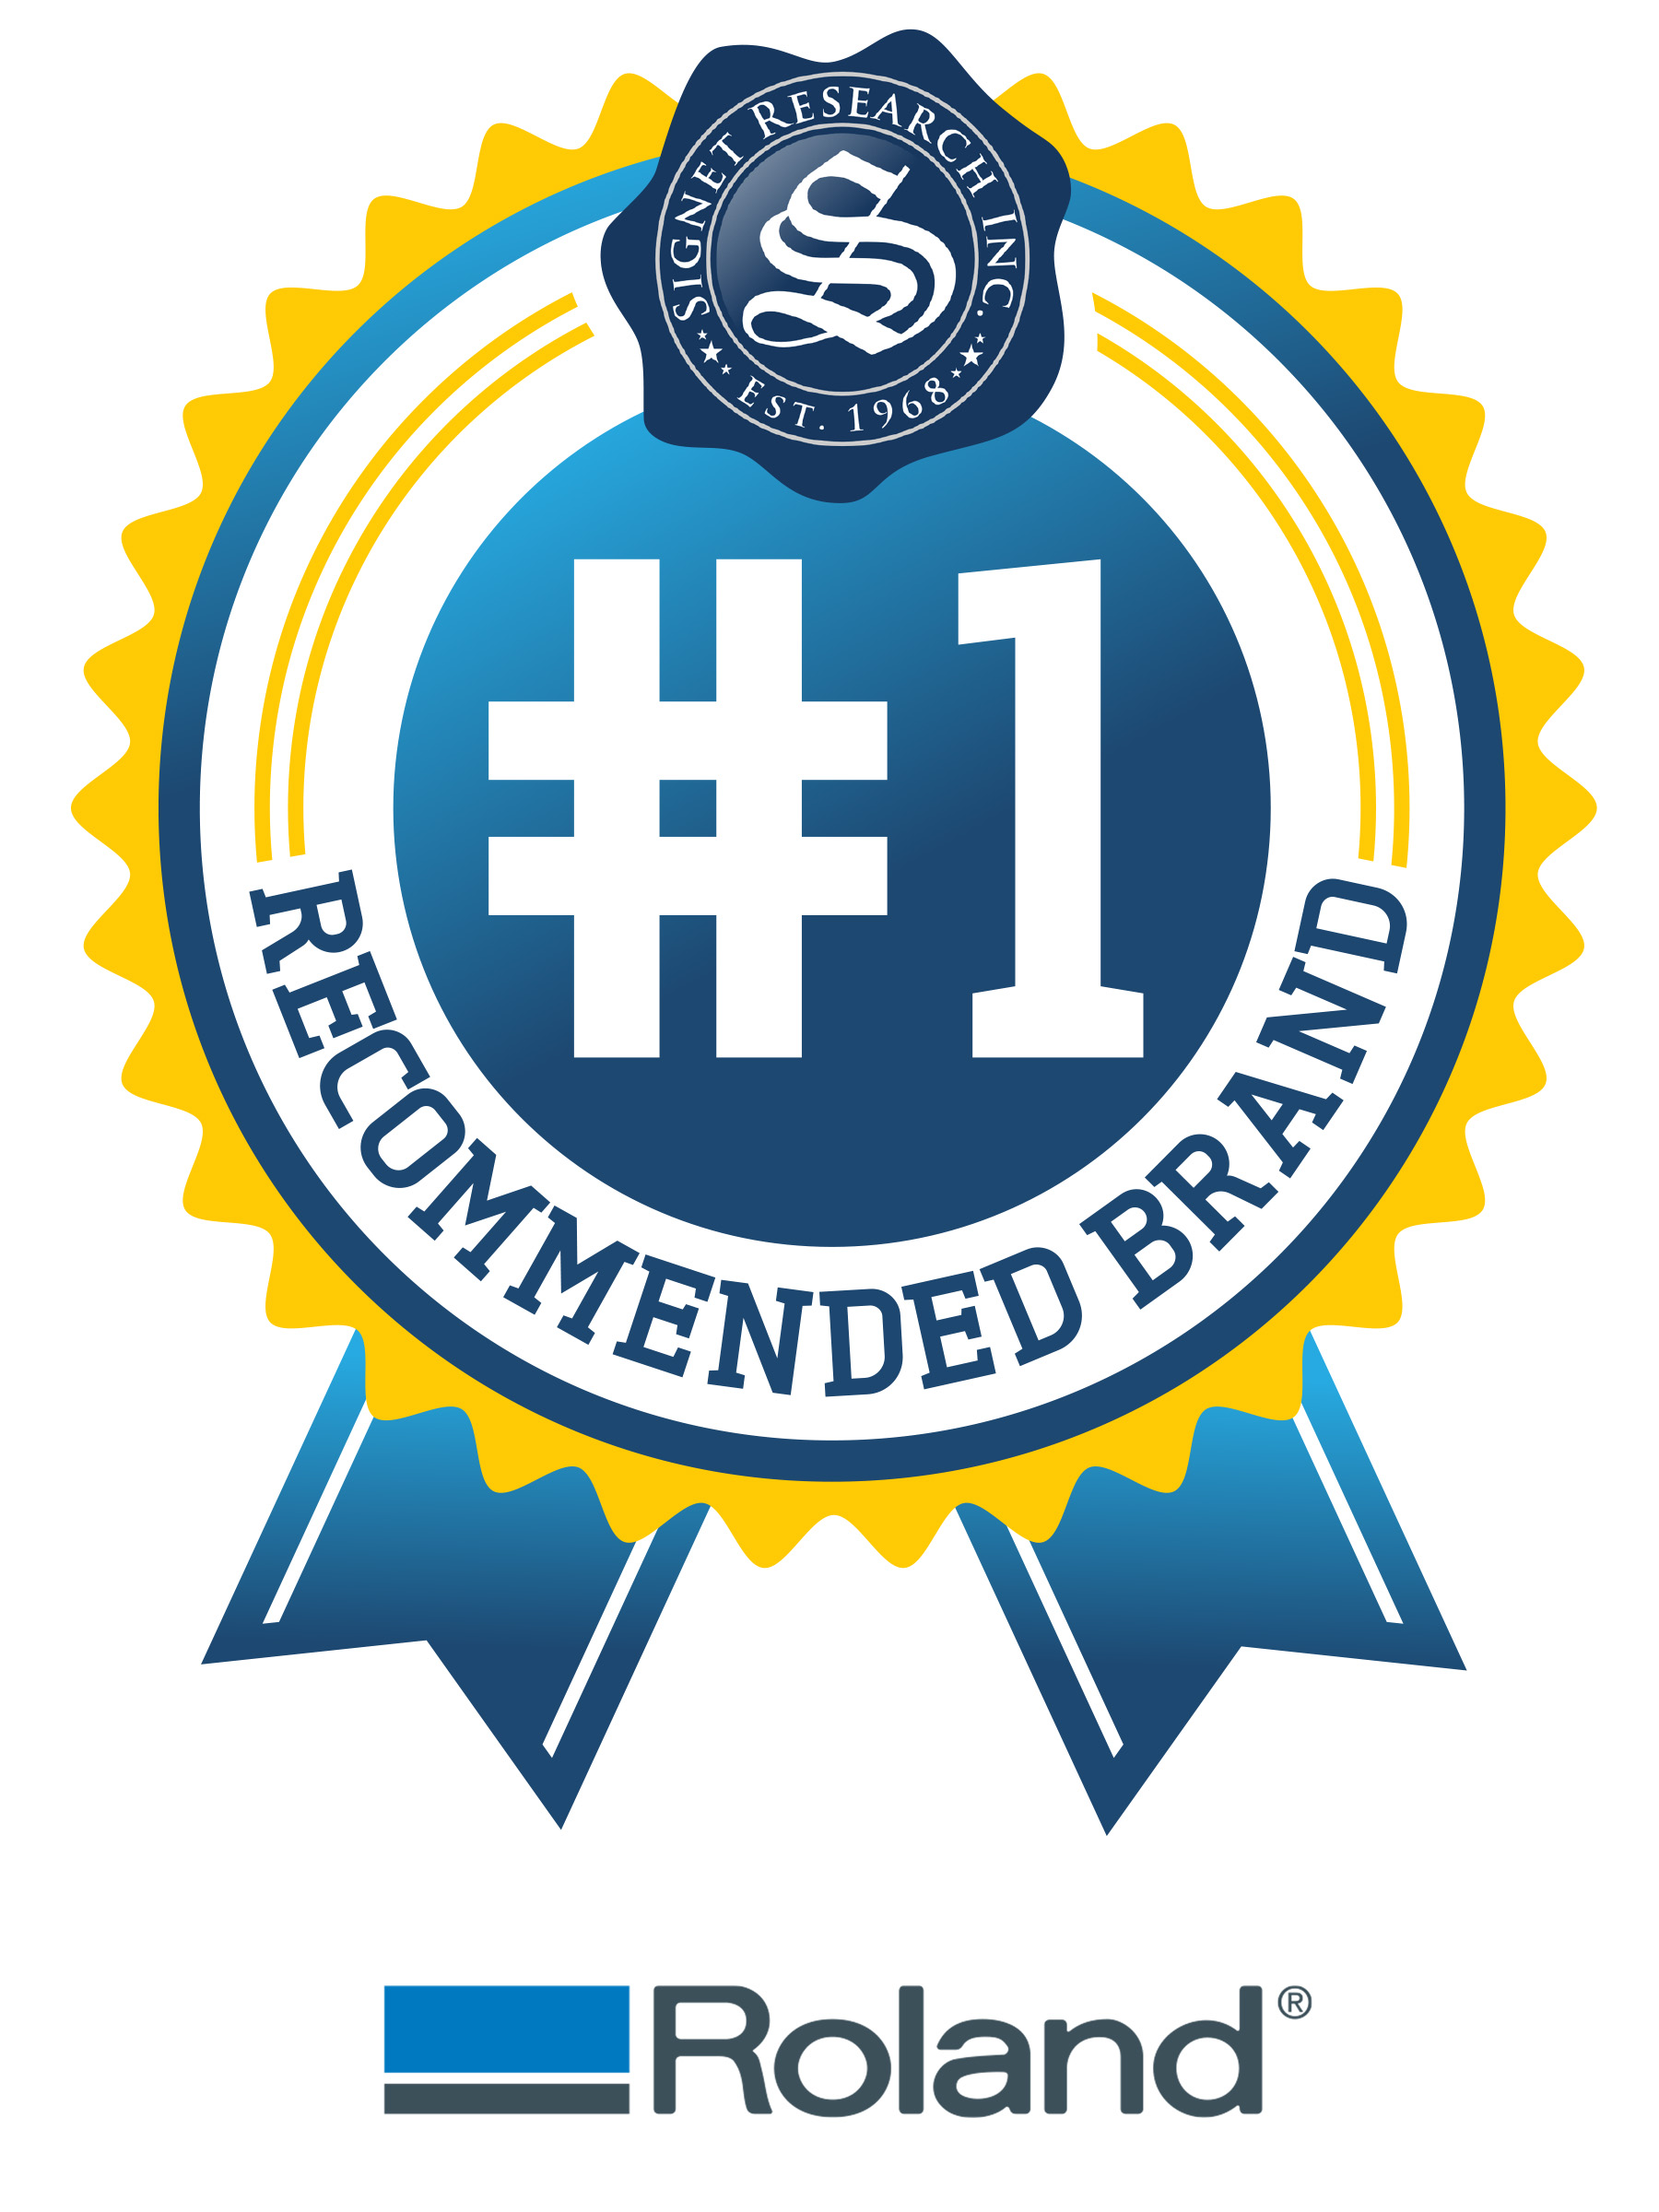 Roland named the most recommended digital printer brand according roland named number one digital printer brand in recent signet brandstudy buycottarizona Images